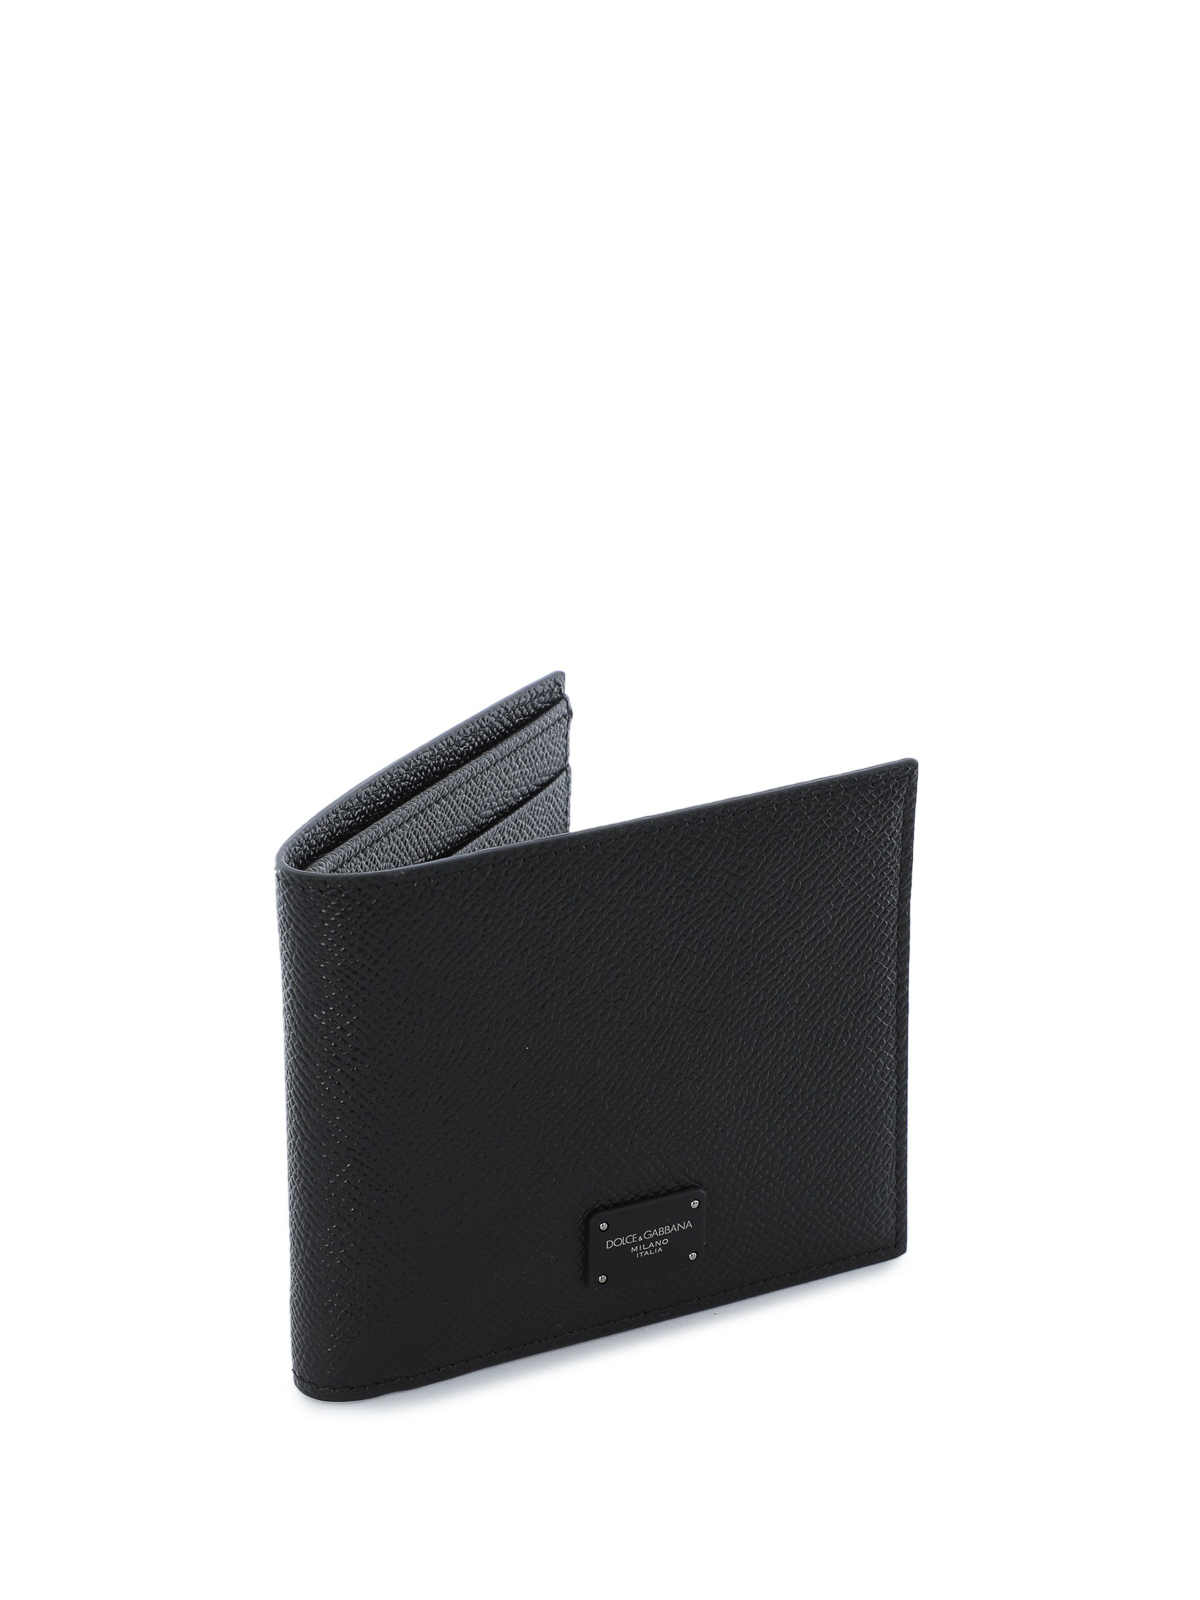 10f79ef7dd7 DOLCE & GABBANA: wallets & purses online - Black Dauphine leather wallet